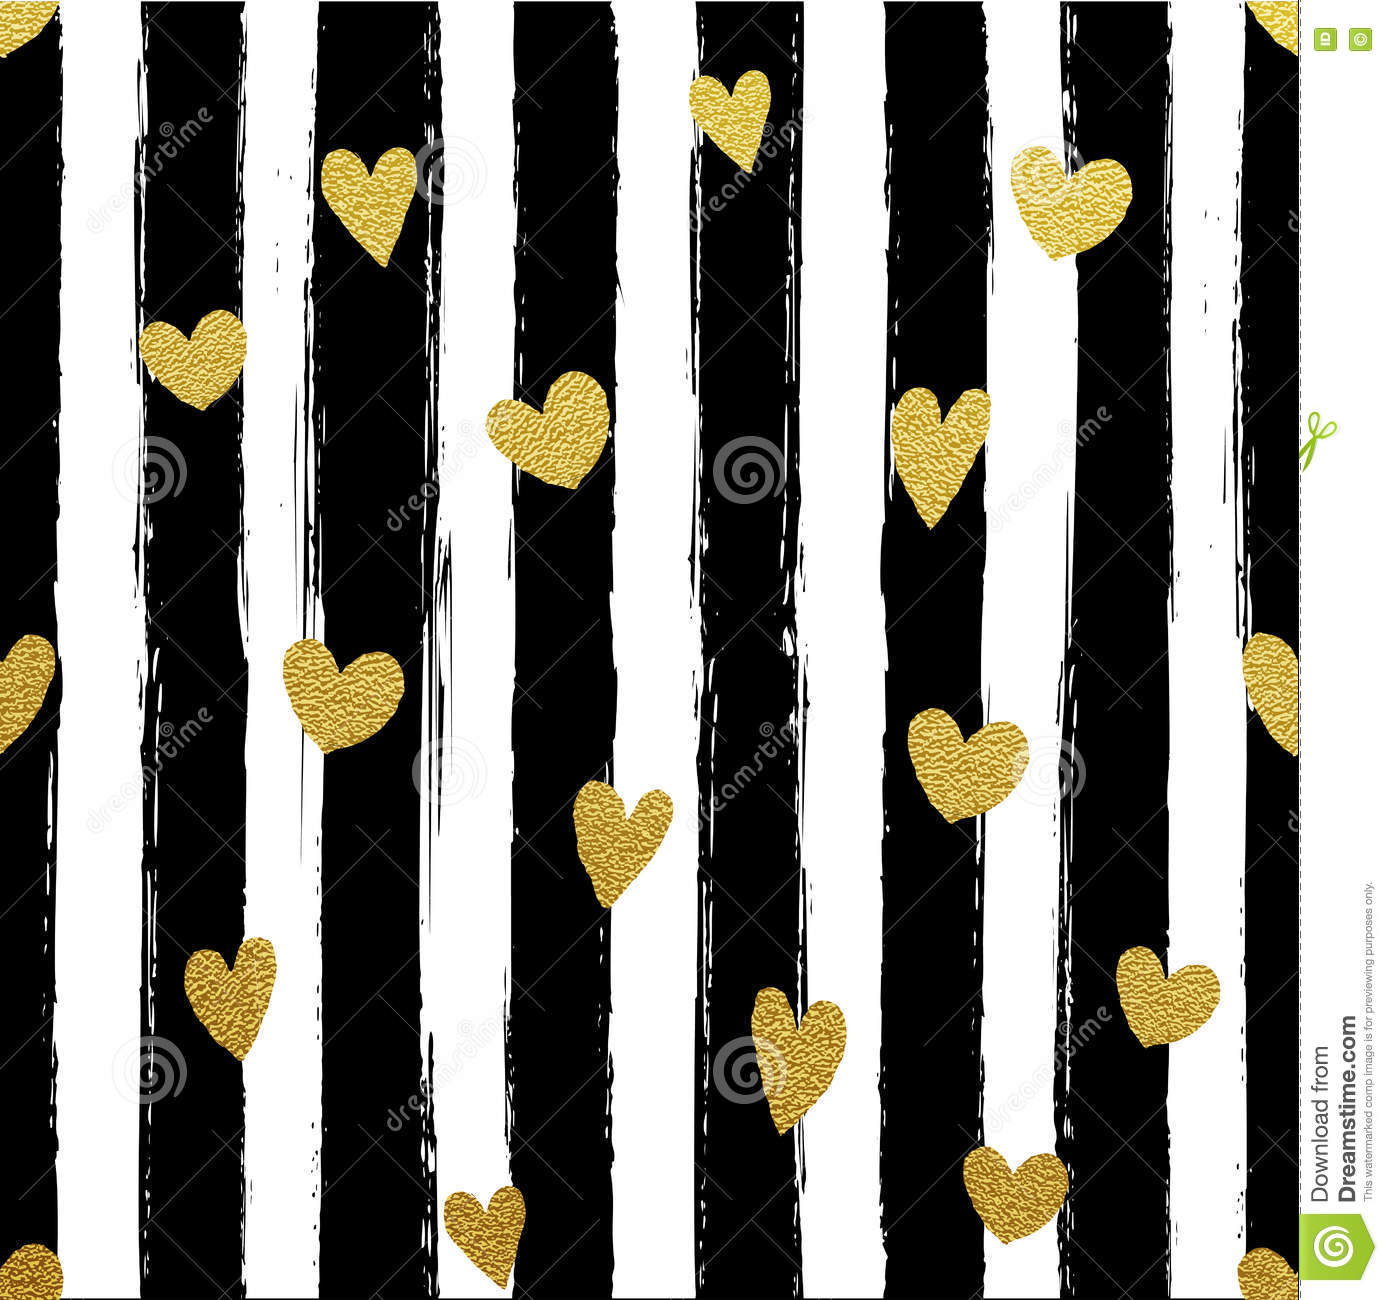 cestlaviv_Black Stripe Gold Hearts wallpaper - cest_la_viv ...